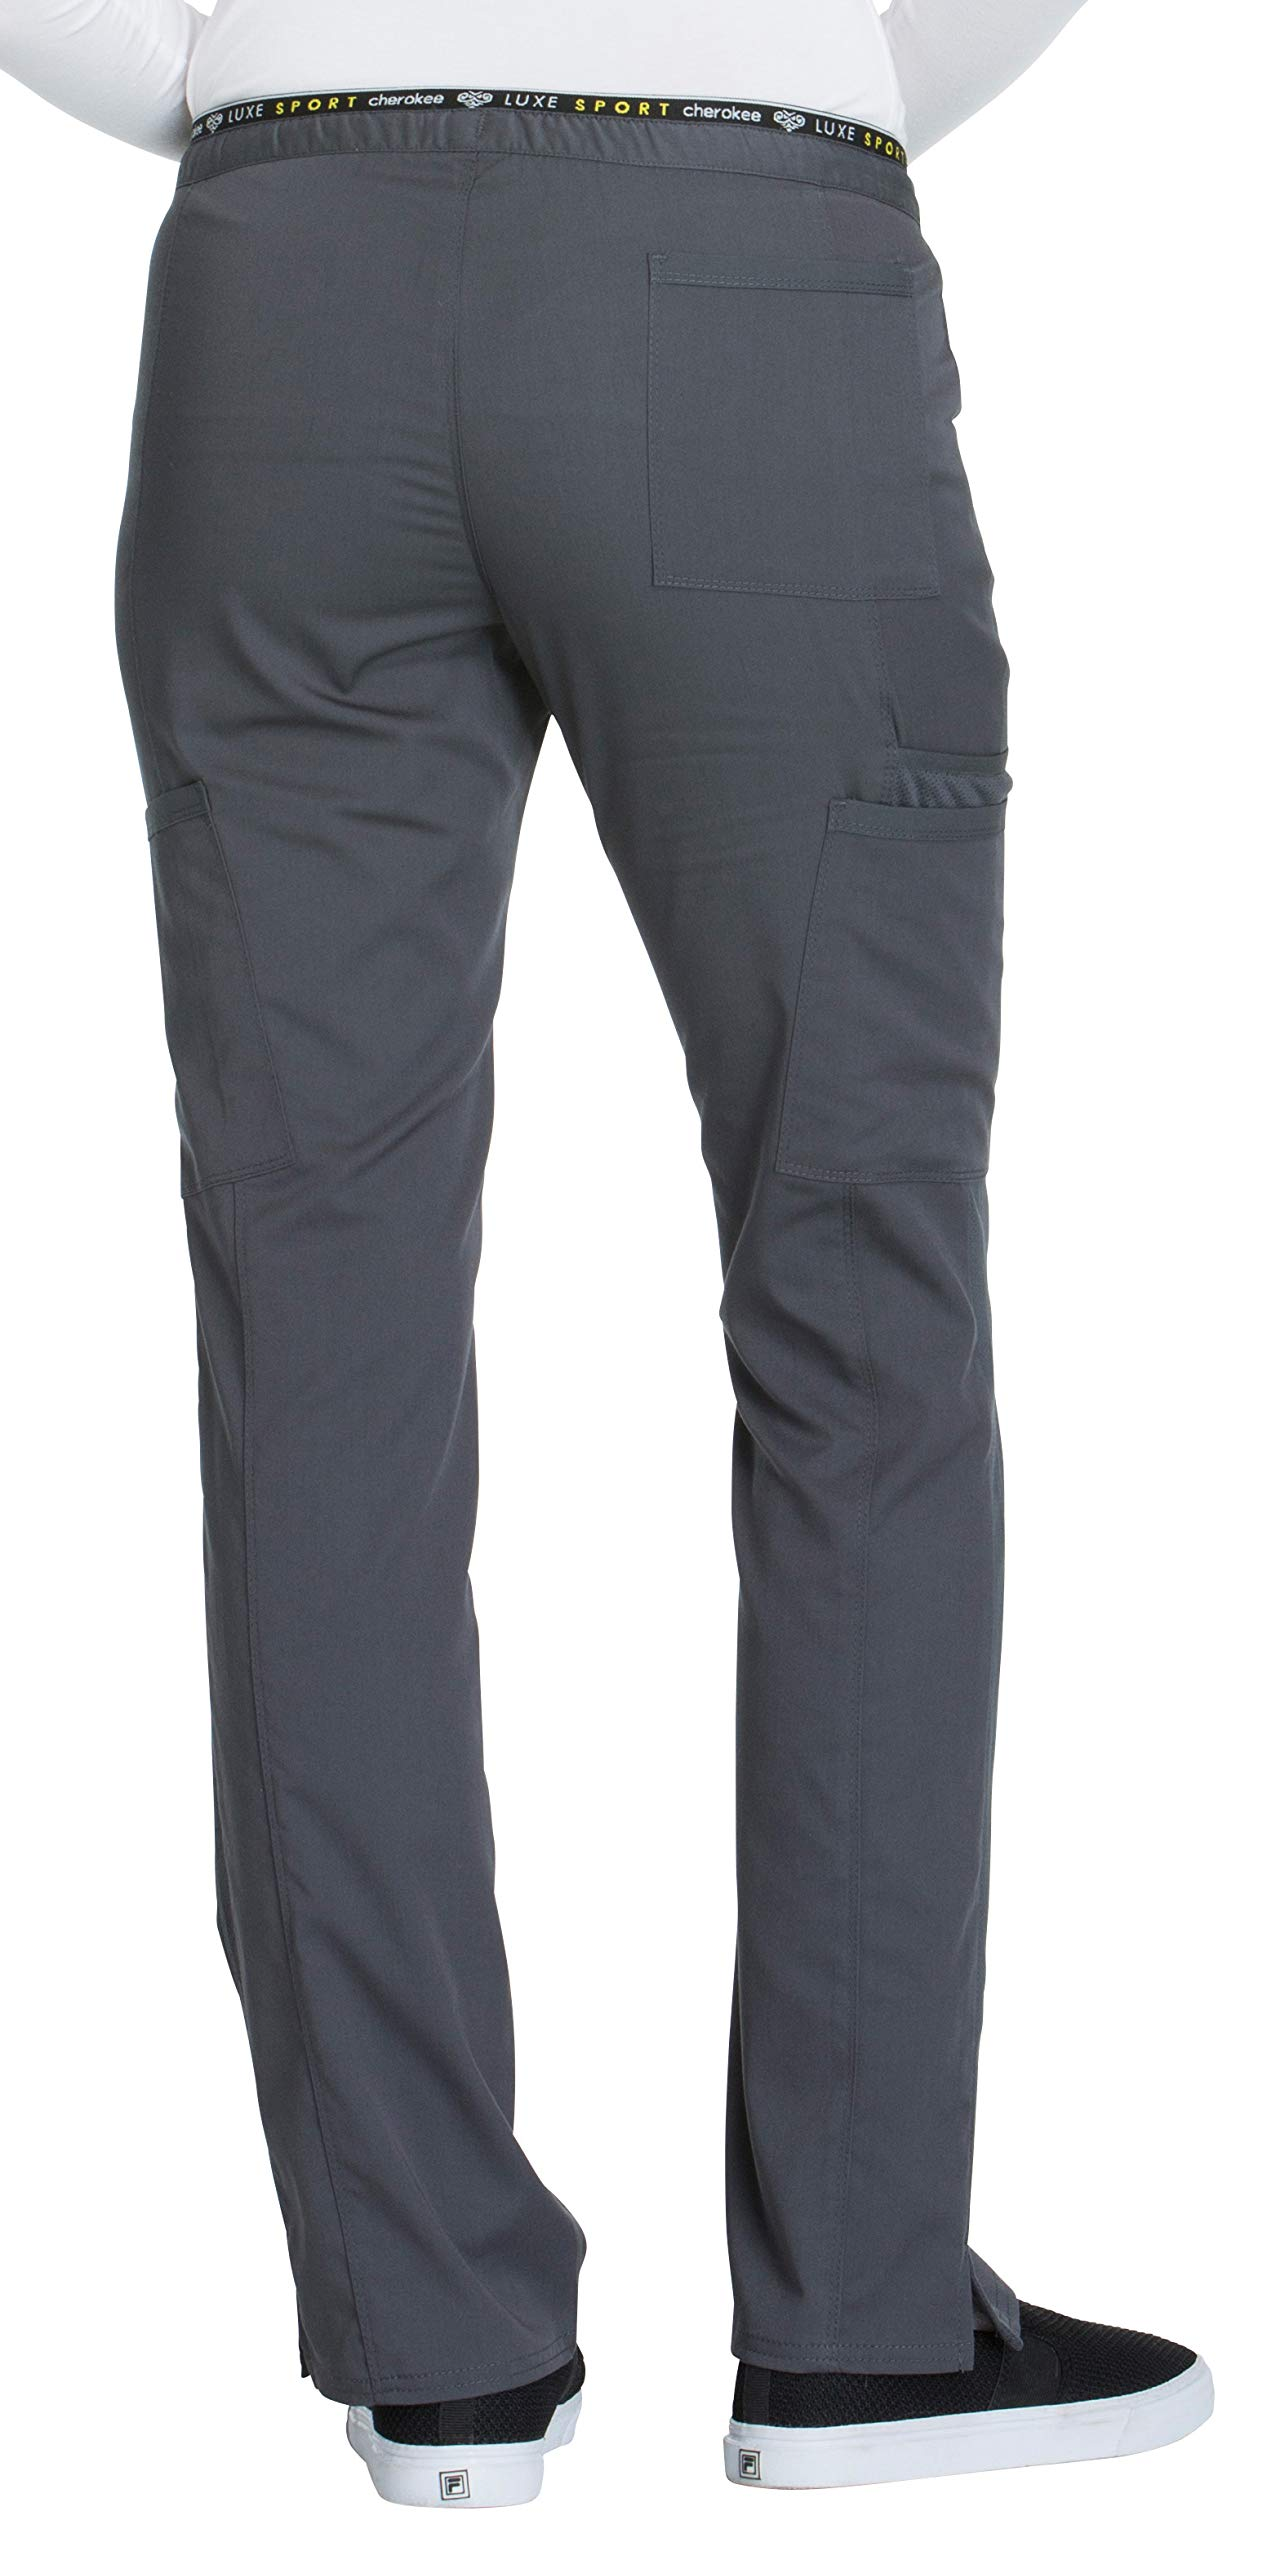 Cherokee Women's Luxe Sport Mid Rise Straight Leg Pull-on Pant, Pewter, Medium by Cherokee (Image #2)